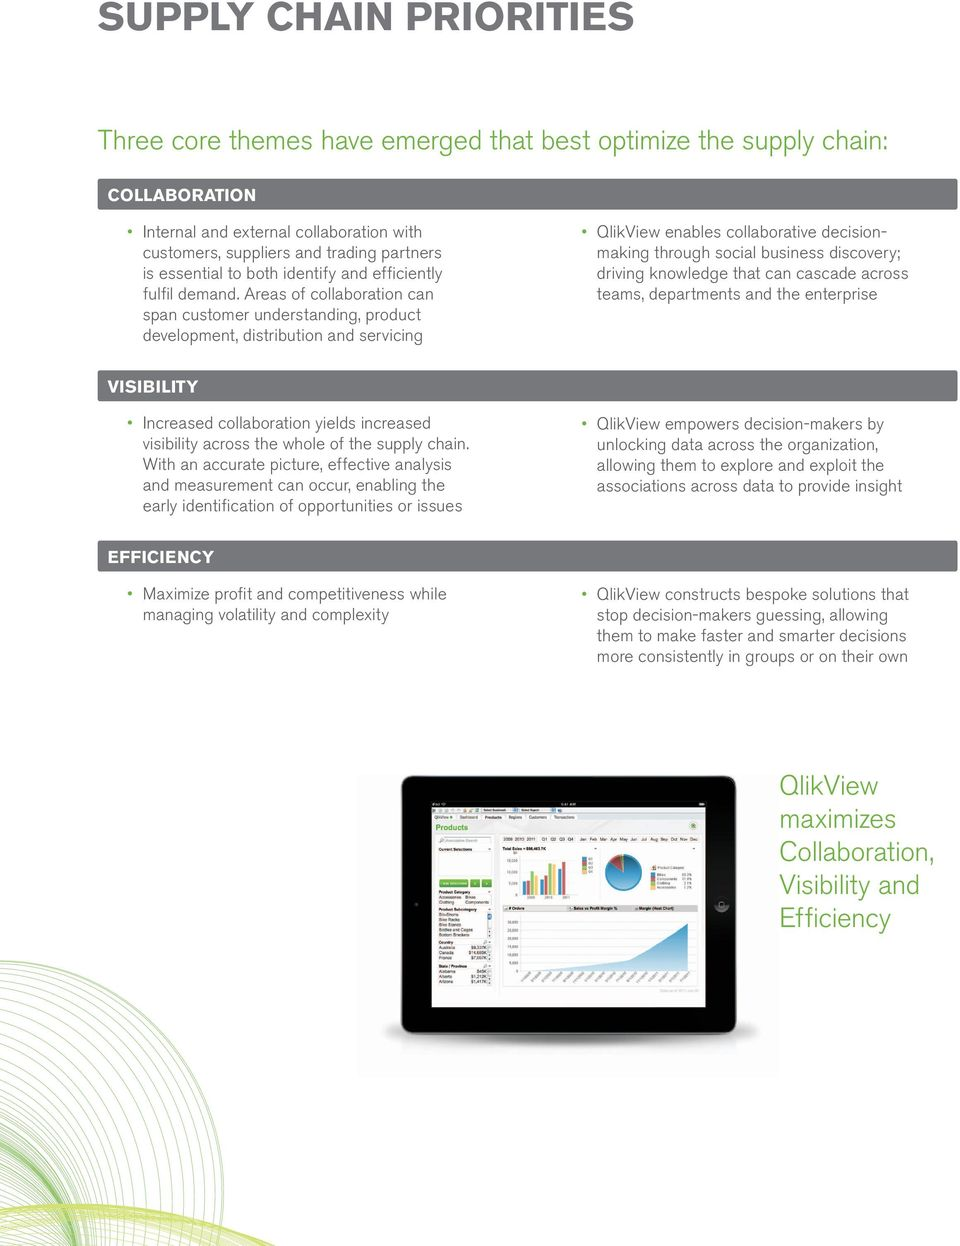 Areas of collaboration can span customer understanding, product development, distribution and servicing QlikView enables collaborative decisionmaking through social business discovery; driving